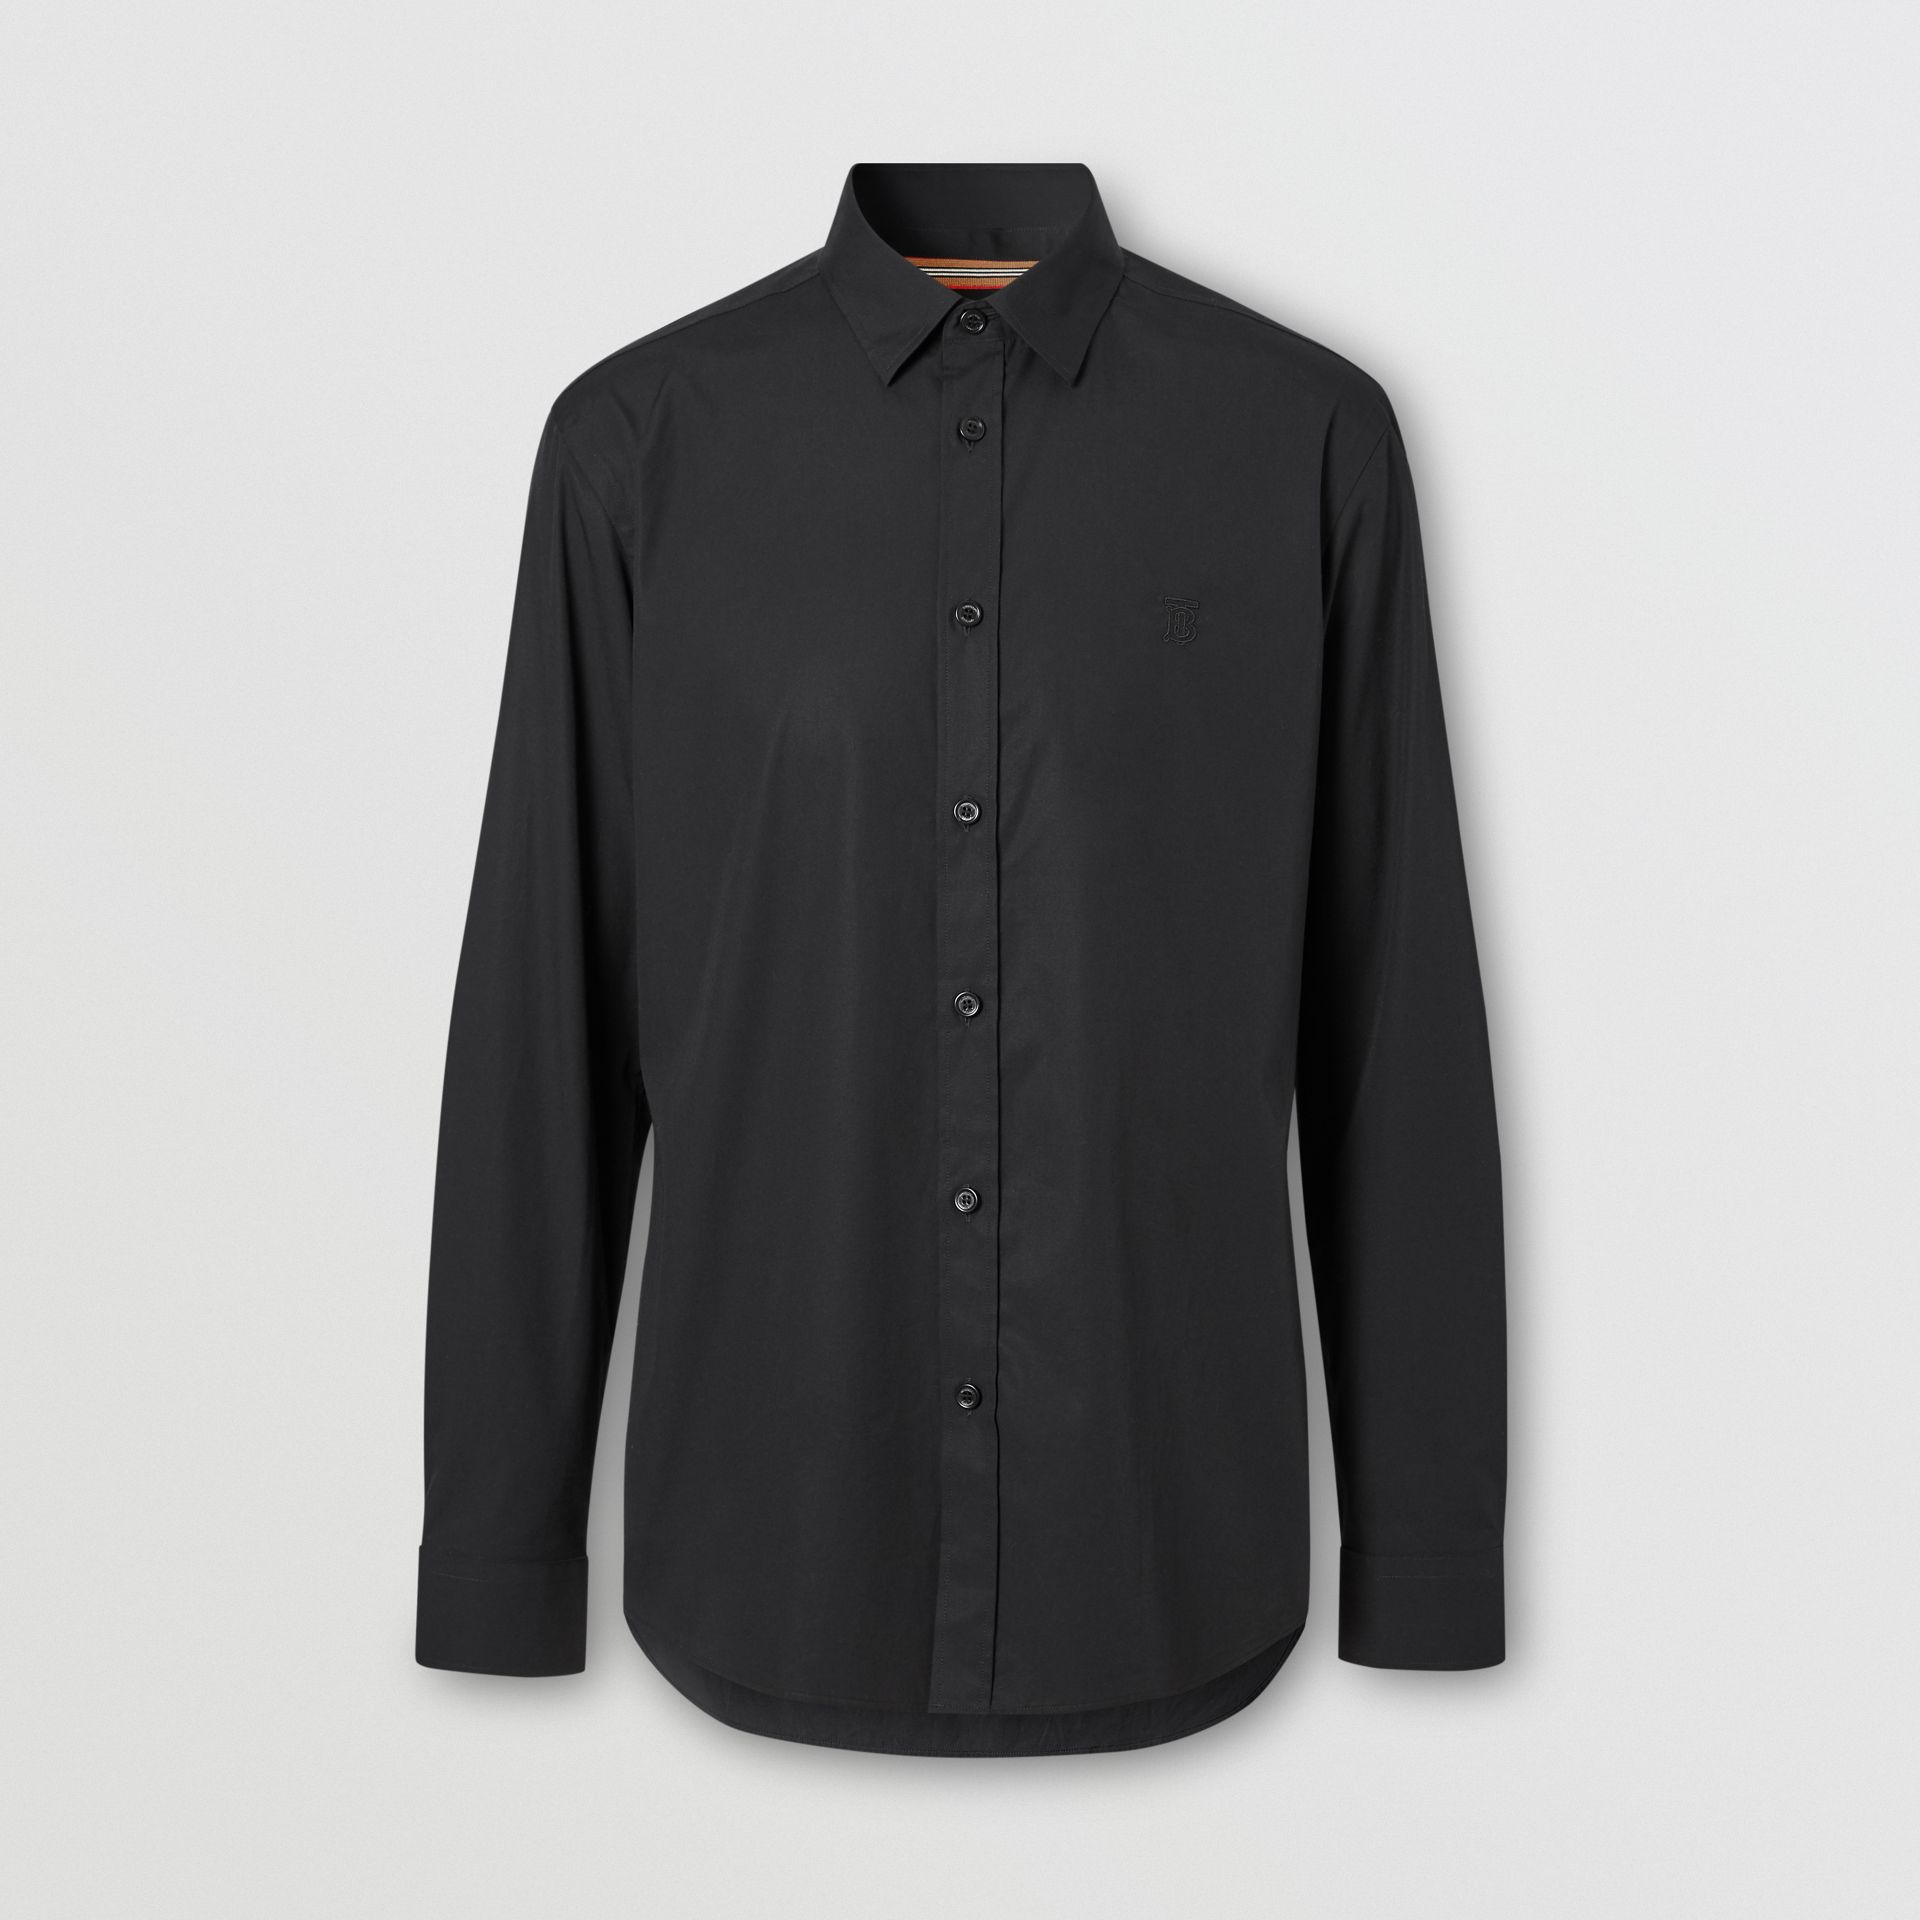 Monogram Motif Stretch Cotton Poplin Shirt in Black - Men | Burberry - gallery image 3